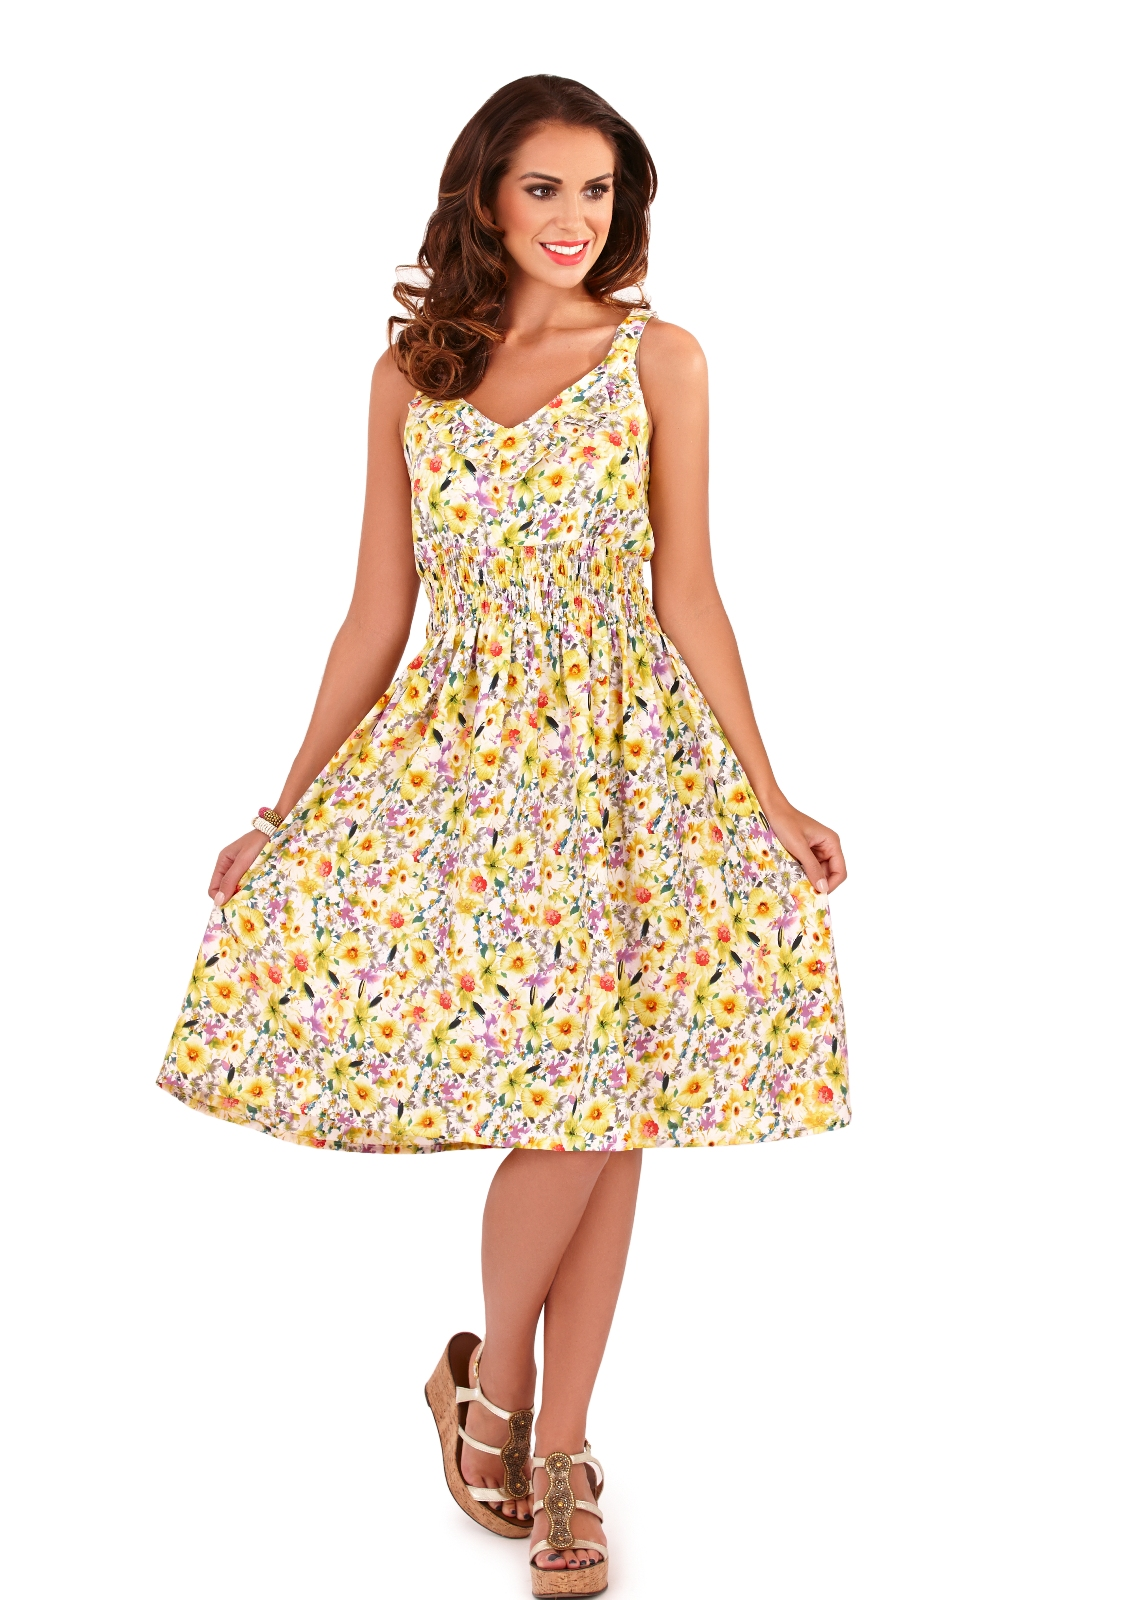 Whether you want to glam it up or keep it casual, our women's dresses at zulily Apparel, Home & More · New Events Every Day · Hurry, Limited Inventory · New Deals Every Day57,+ followers on Twitter.